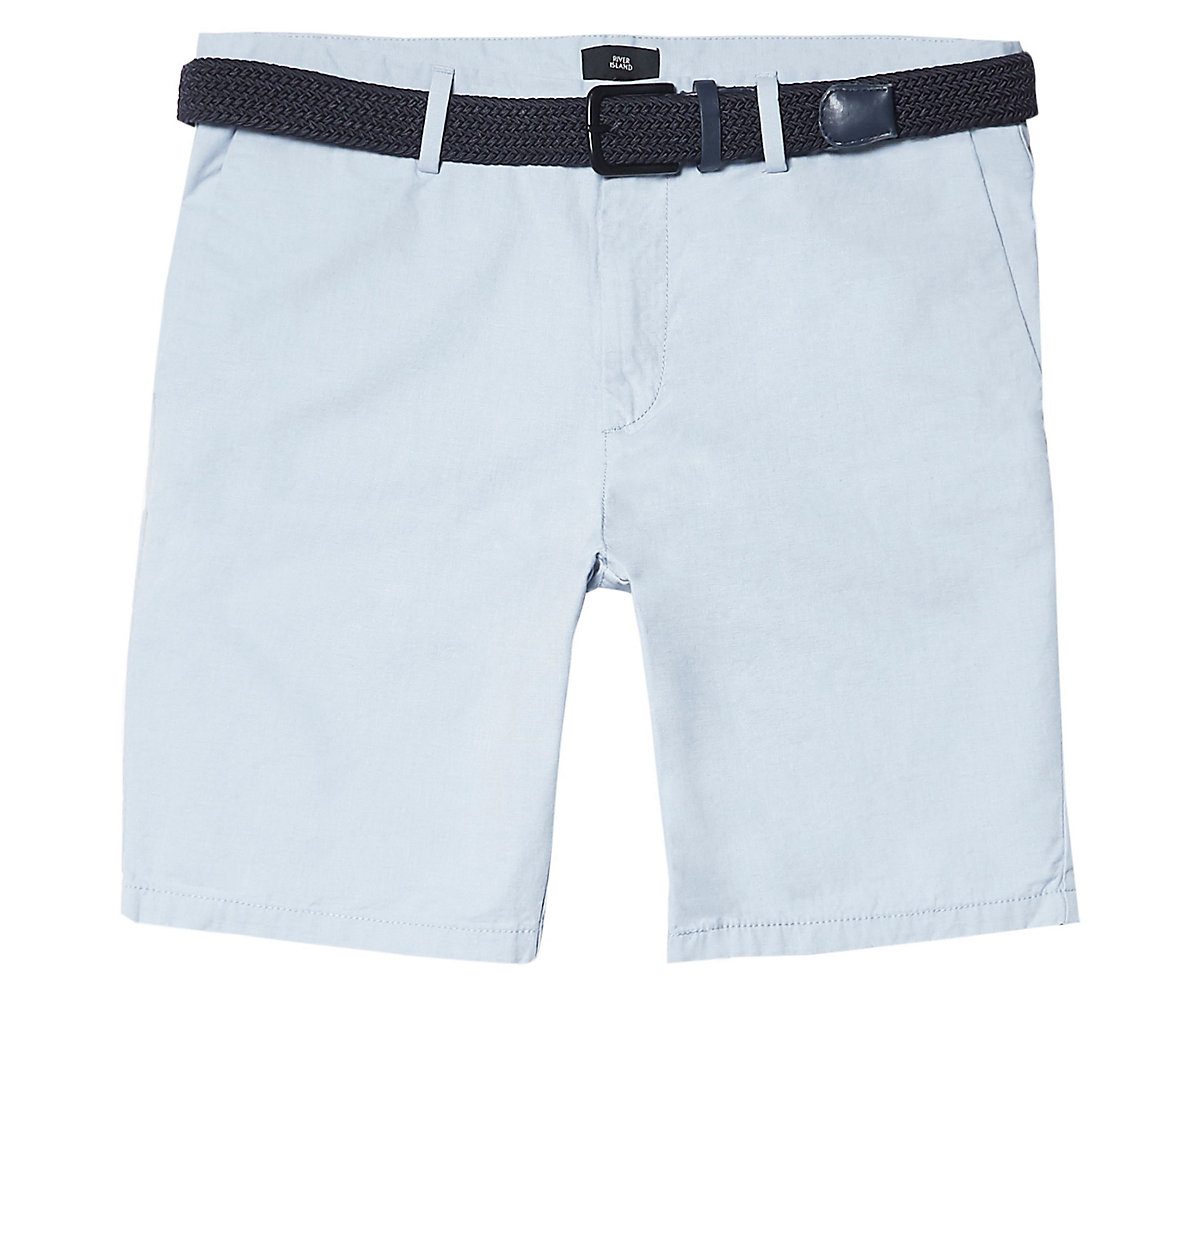 Big and Tall light blue belted chino shorts